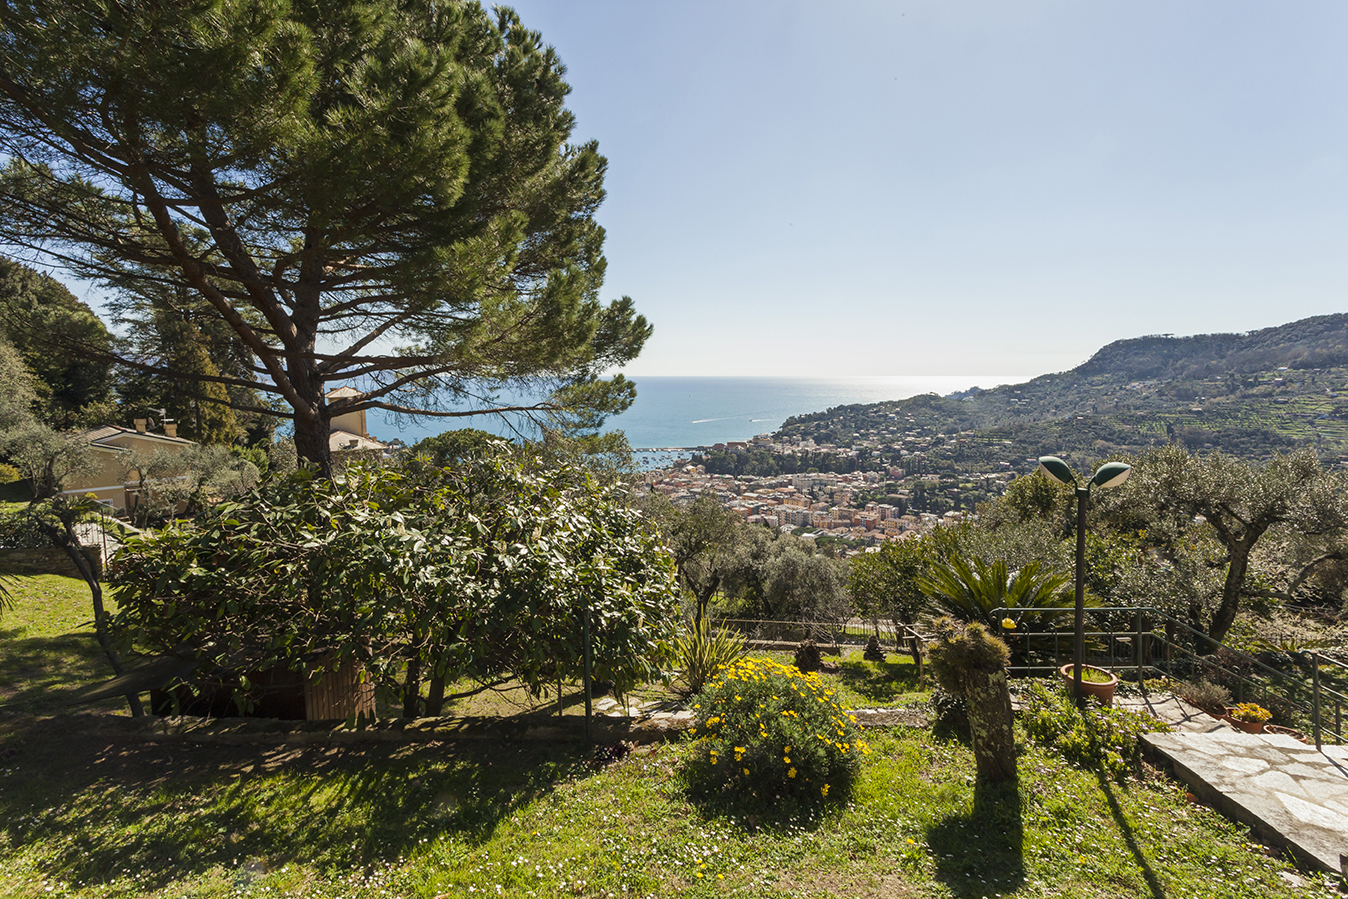 Single Family Home for Sale at Exsclusive villa with breathtaking view via Aurelia Santa Margherita Ligure, Genoa 16038 Italy